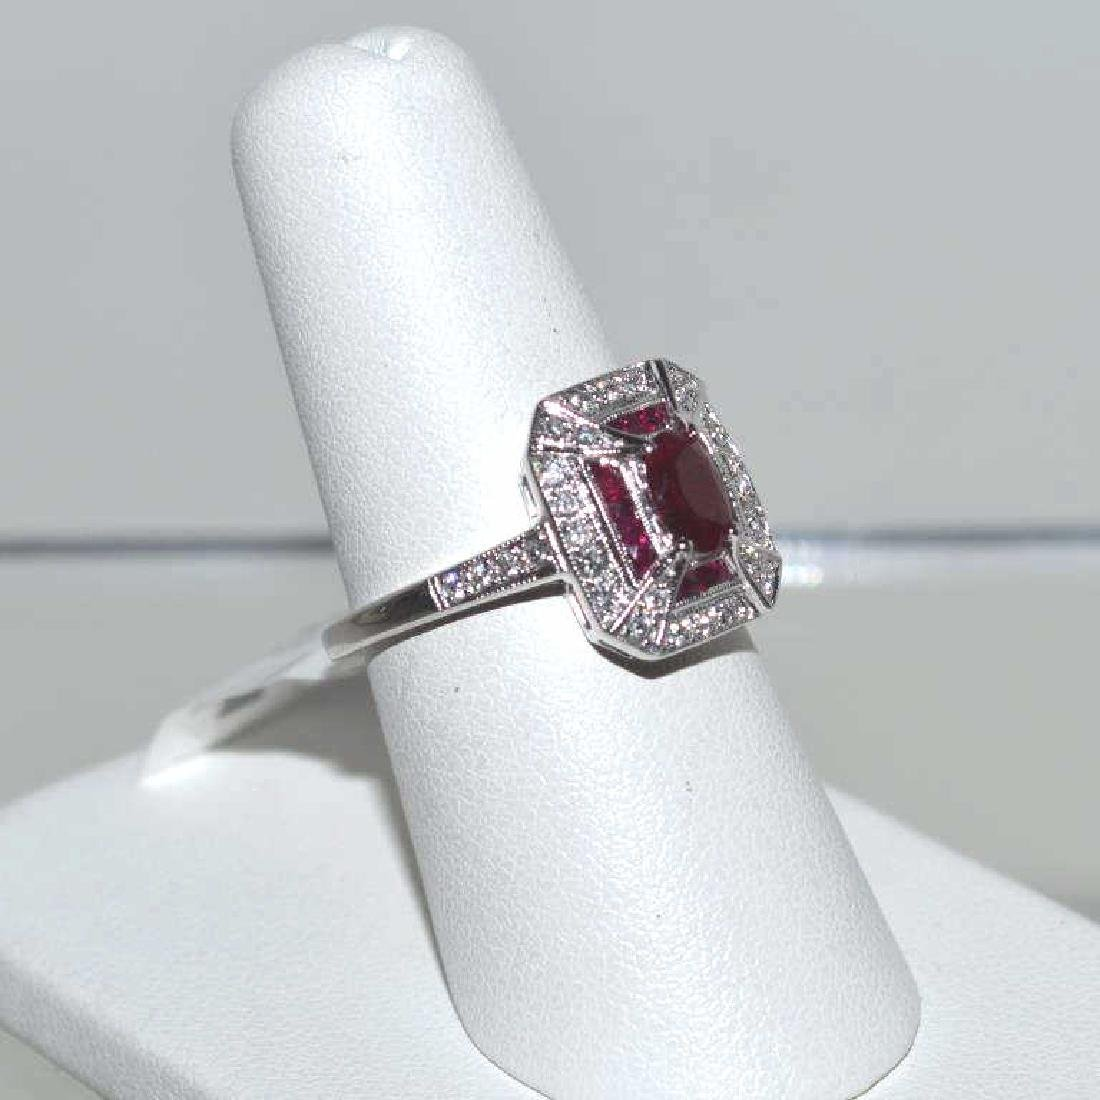 14kt white gold ruby and diamond ring - 2